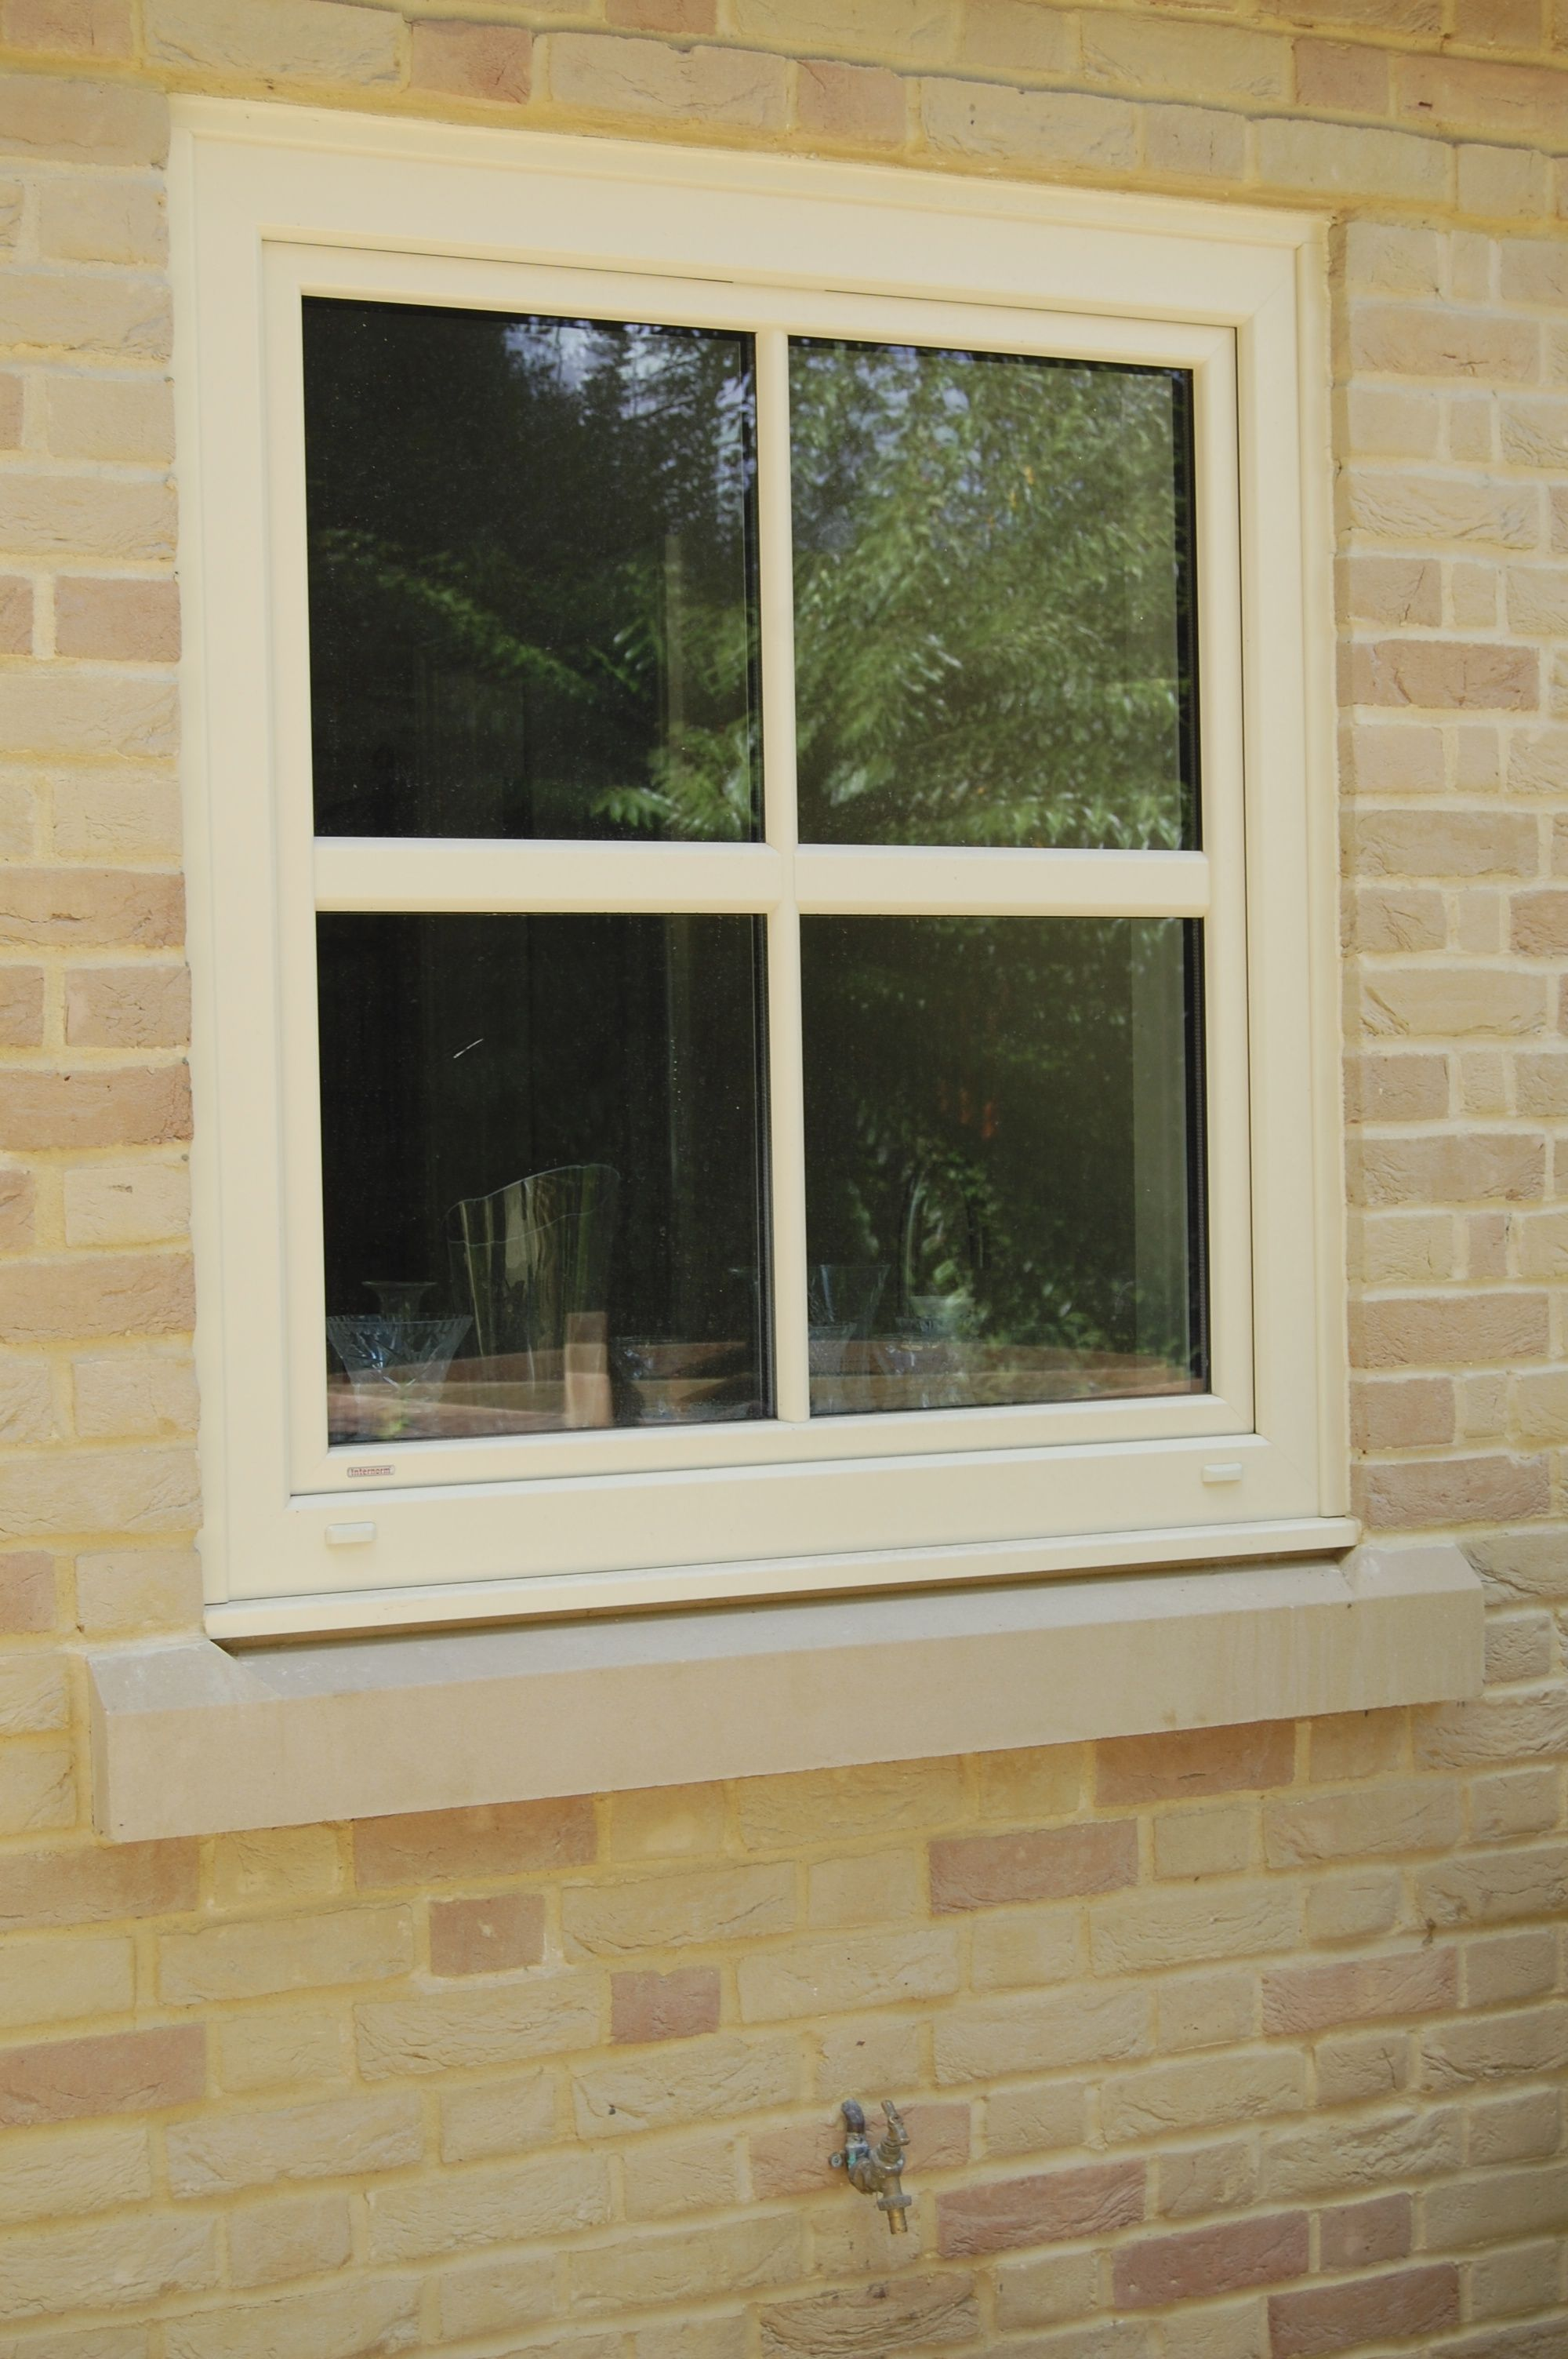 Kf200 Upvc Aluminium Clad Windows Specified In Ral1015 And Designed To Mimic A Sliding Sash